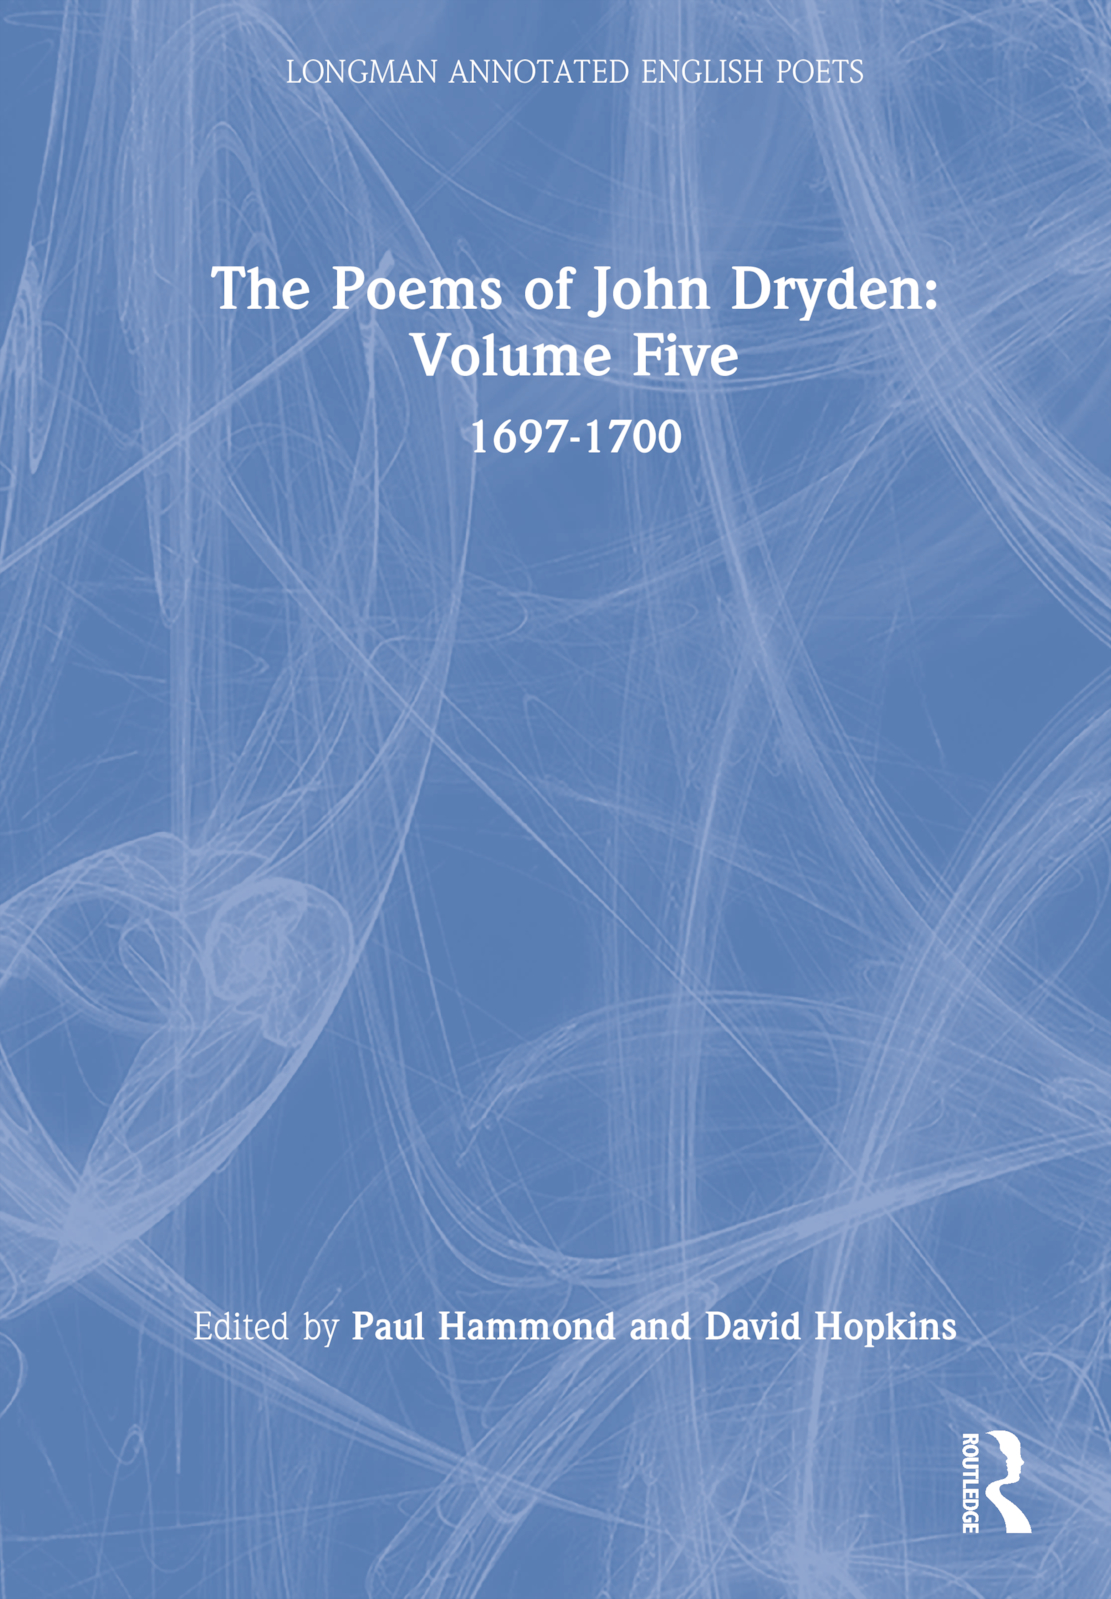 The Poems of John Dryden: Volume Five: 1697-1700 book cover